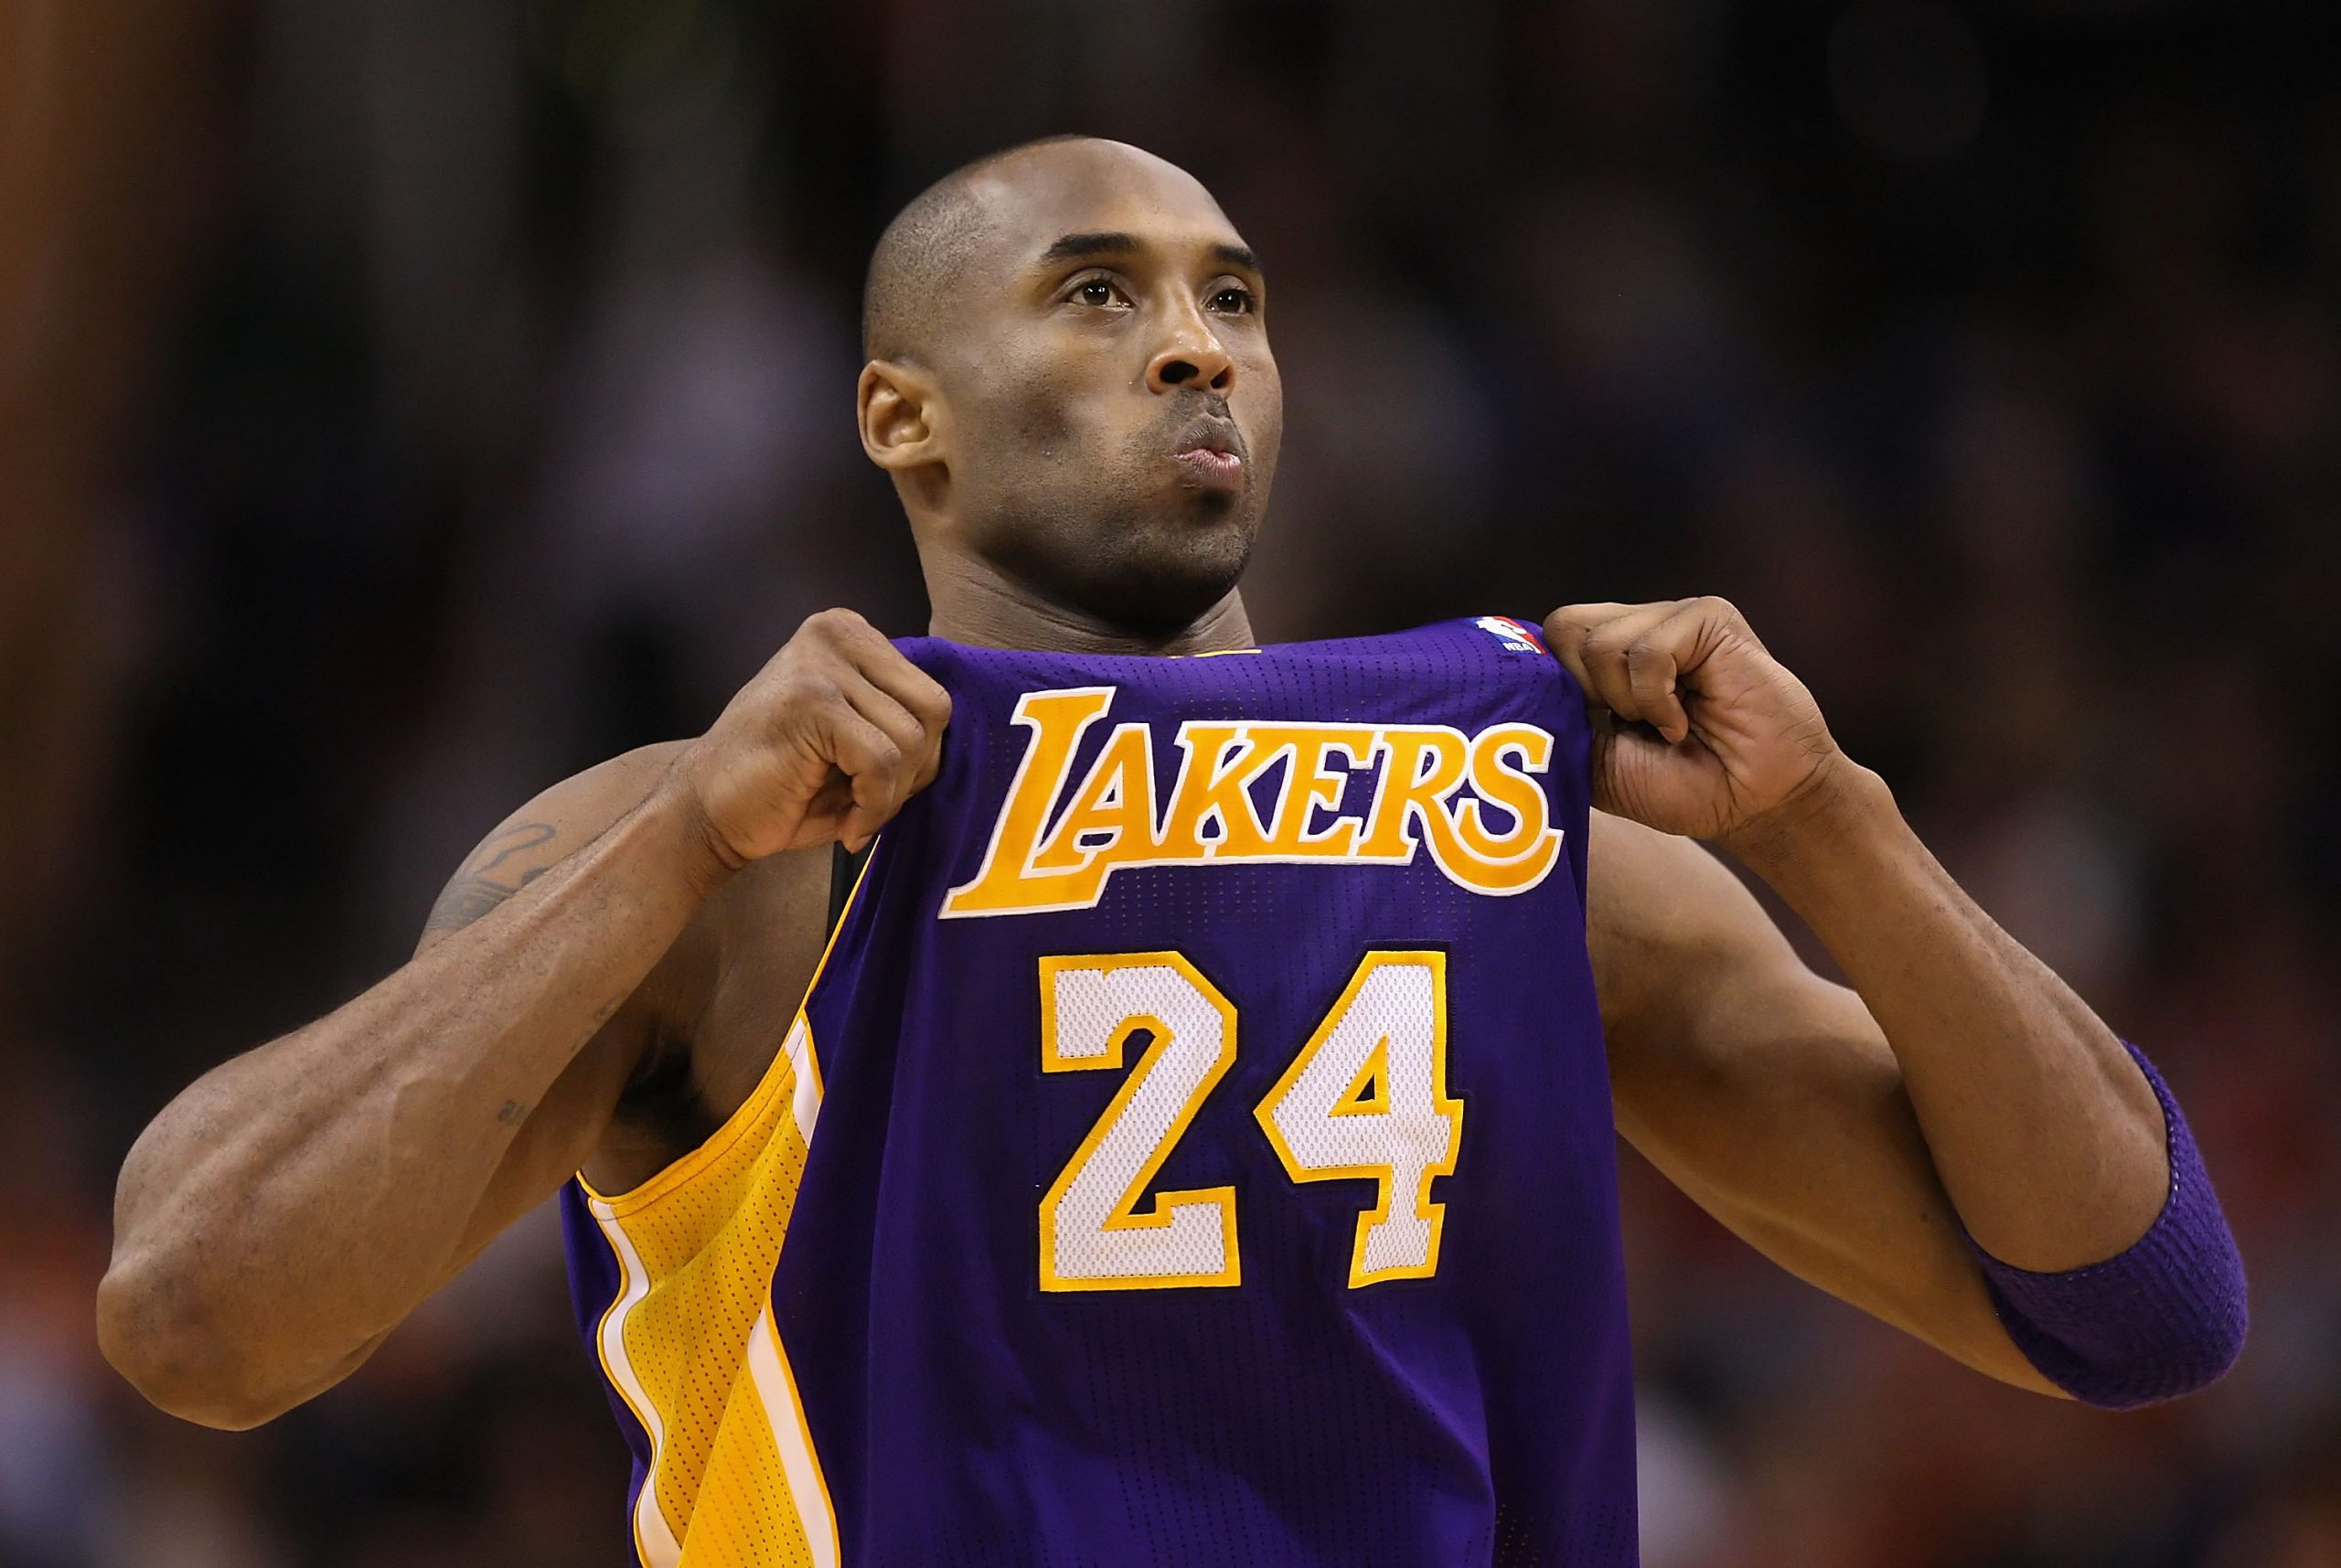 Kobe Bryant holds up his Lakers jersey for the crowd crowd at US Airways Center on February 19, 2012.